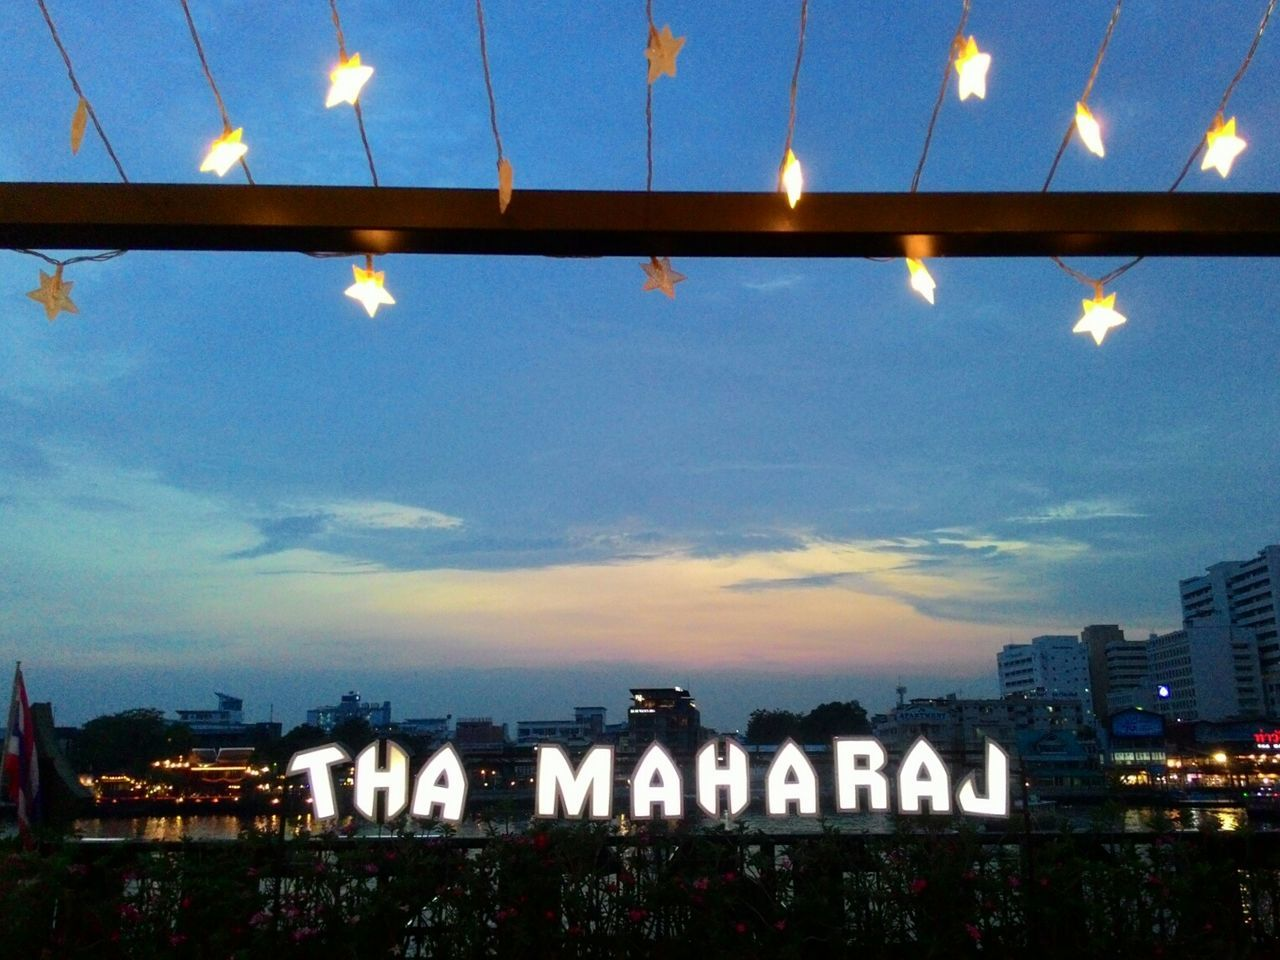 Communication Sky City Night Star The MaharajaPalace Text Architecture Illuminated Outdoors Building Exterior Built Structure No People Low Angle View Cityscape Blue Sky